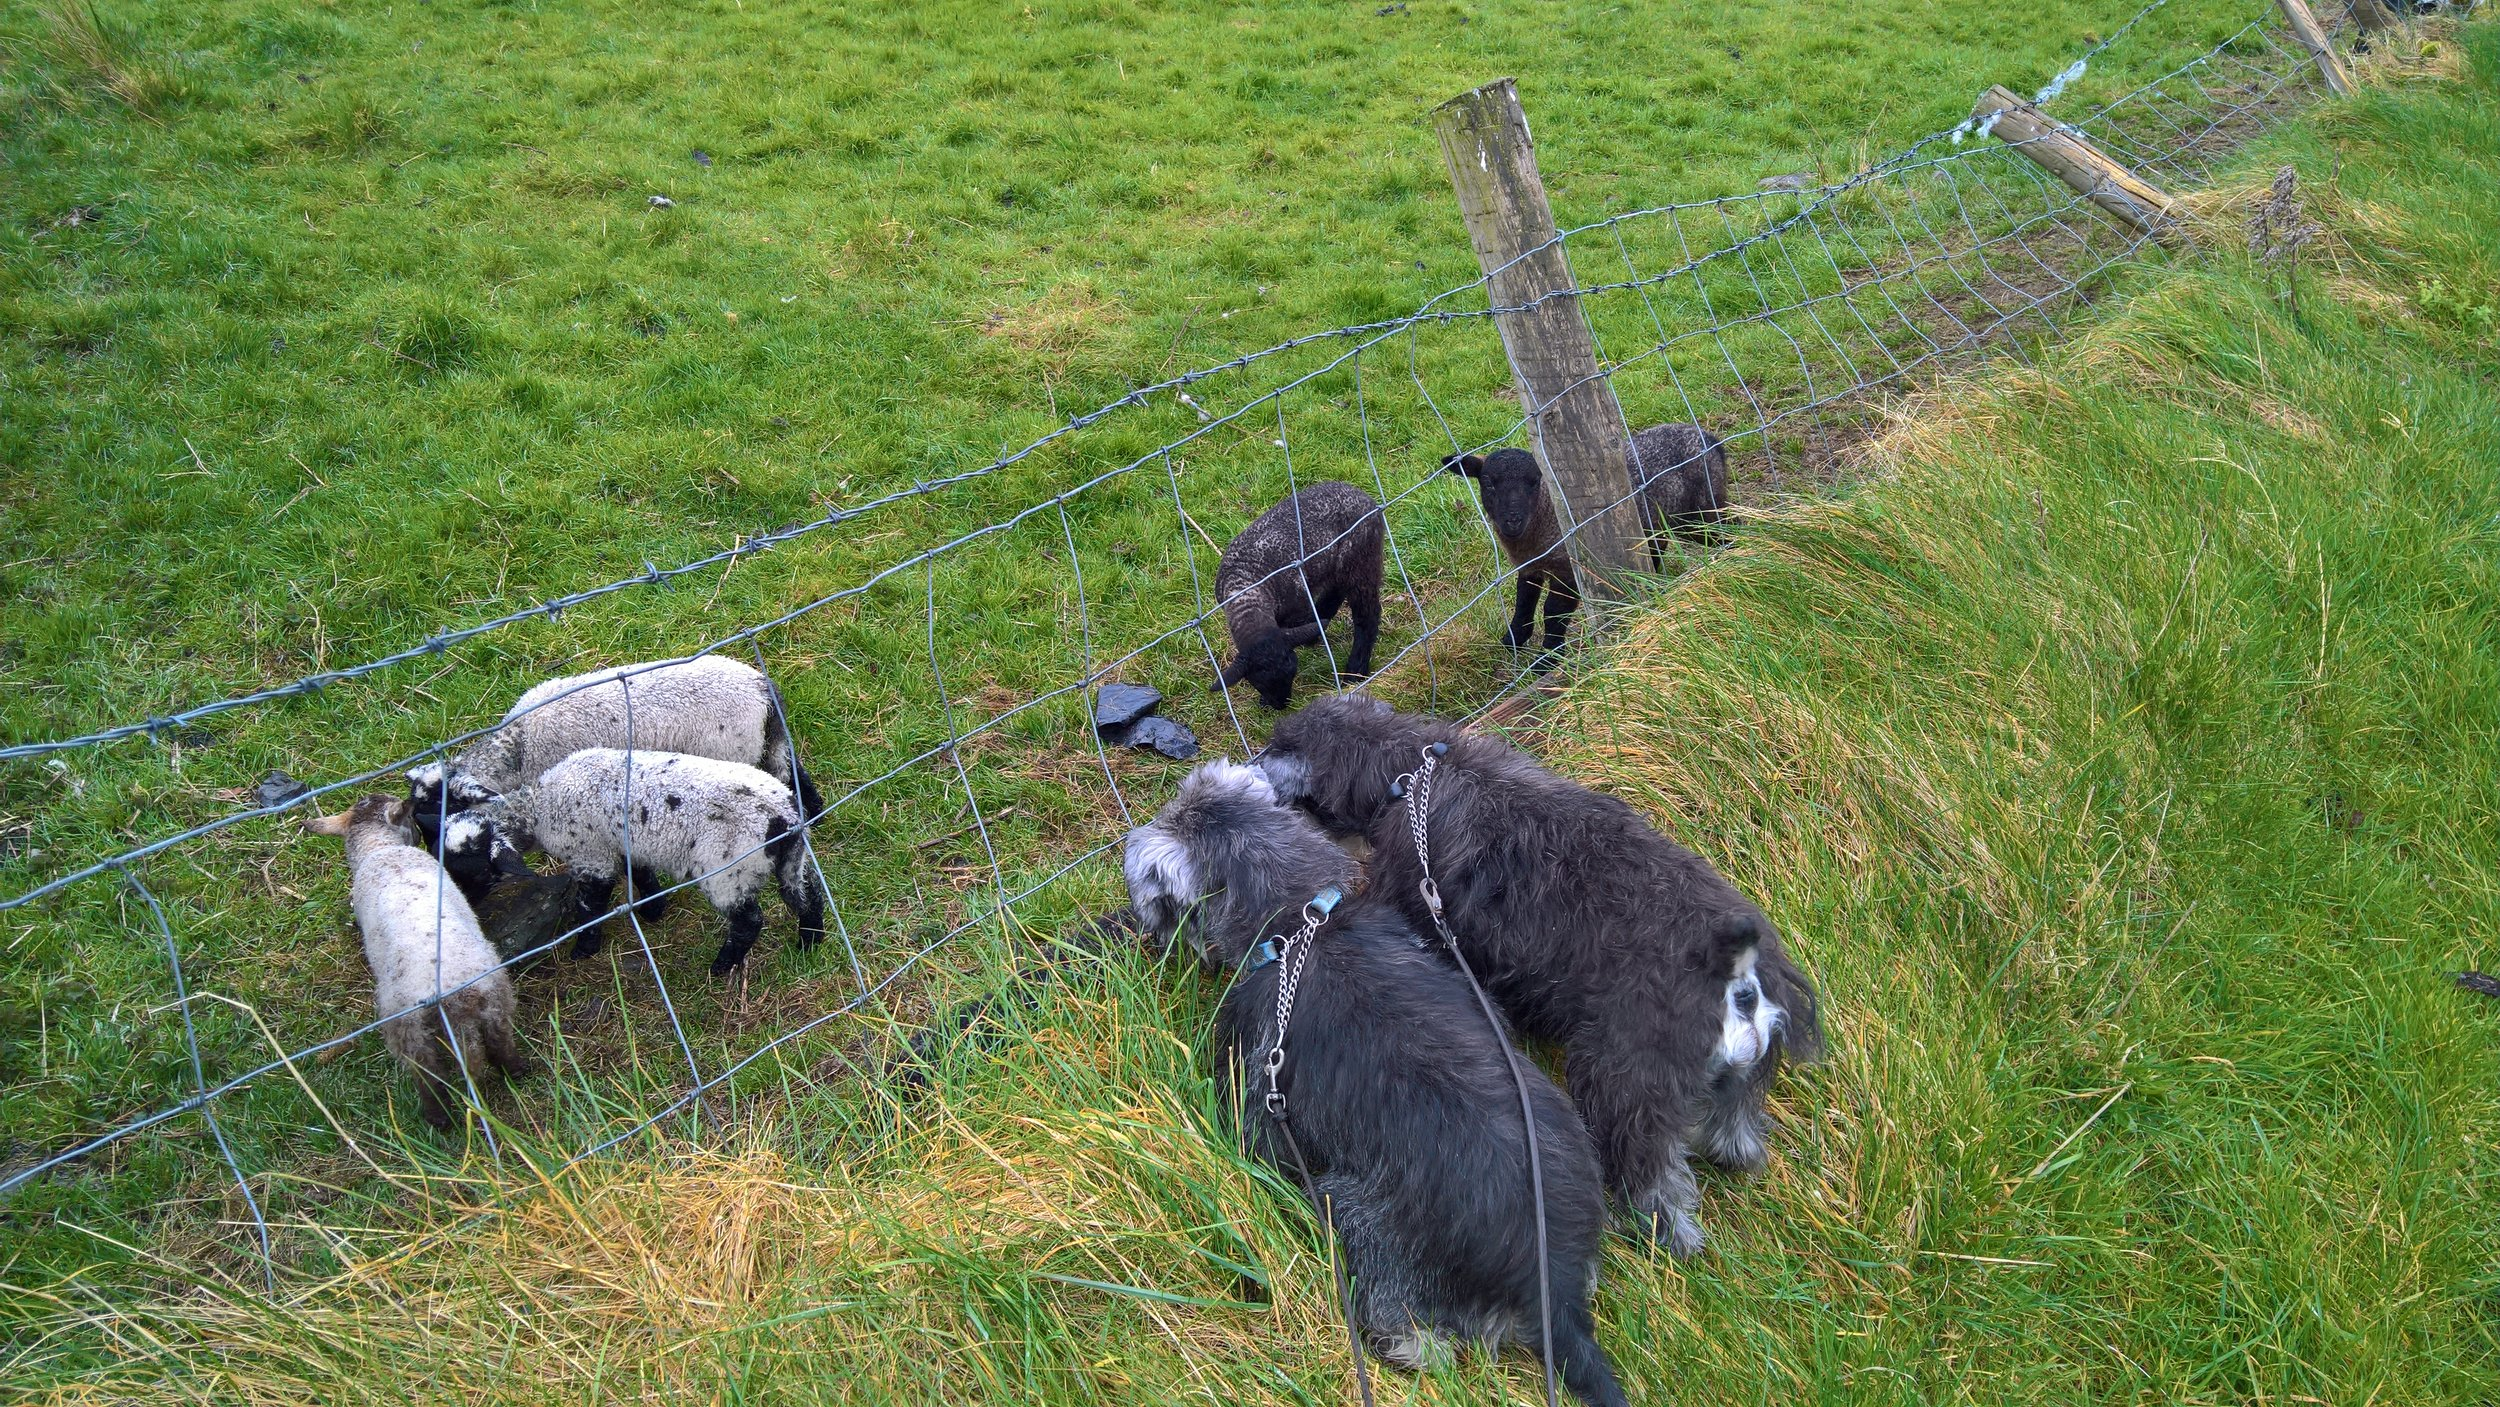 Dexter - the pepper and salt (or grey) one on the left with a tail - loves all animals. Here he and Toby are trying to make friends with lambs.